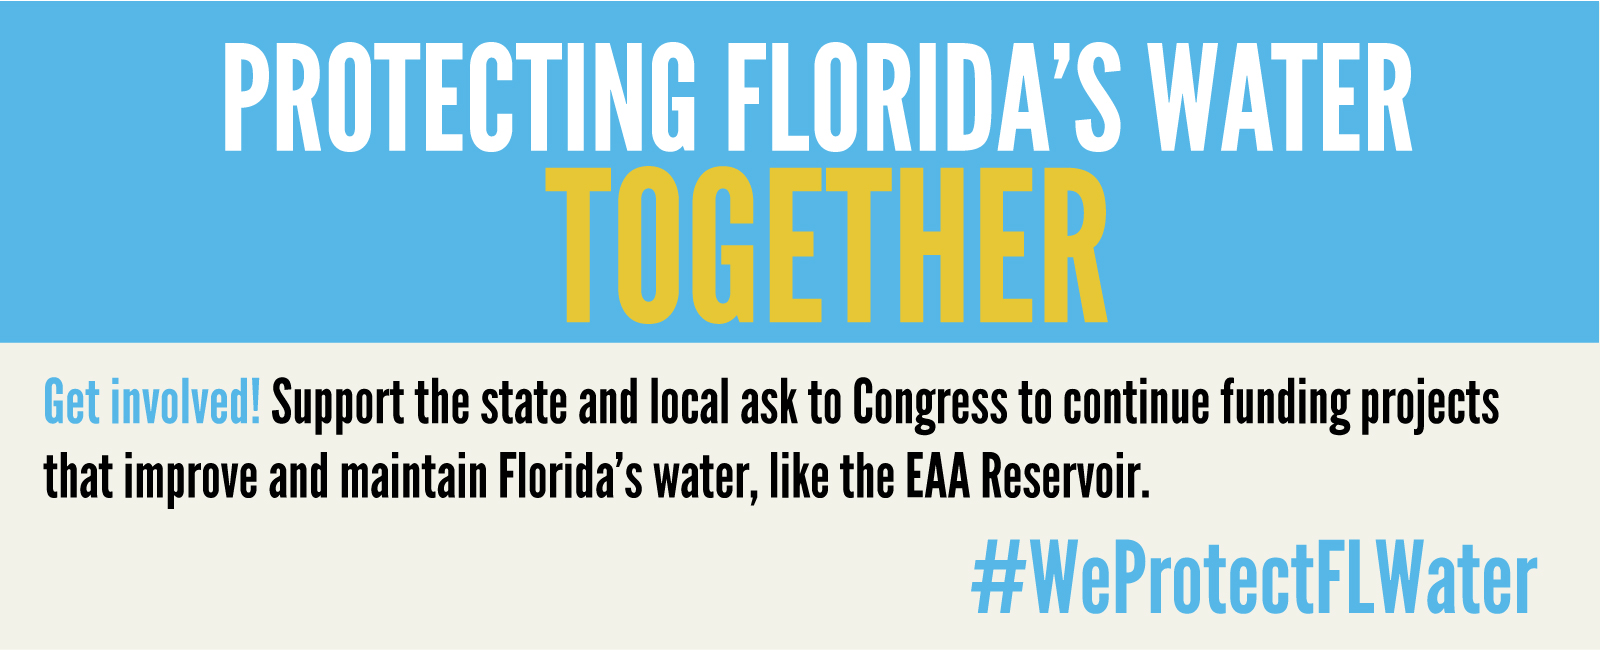 Protecting Florida's Water Together